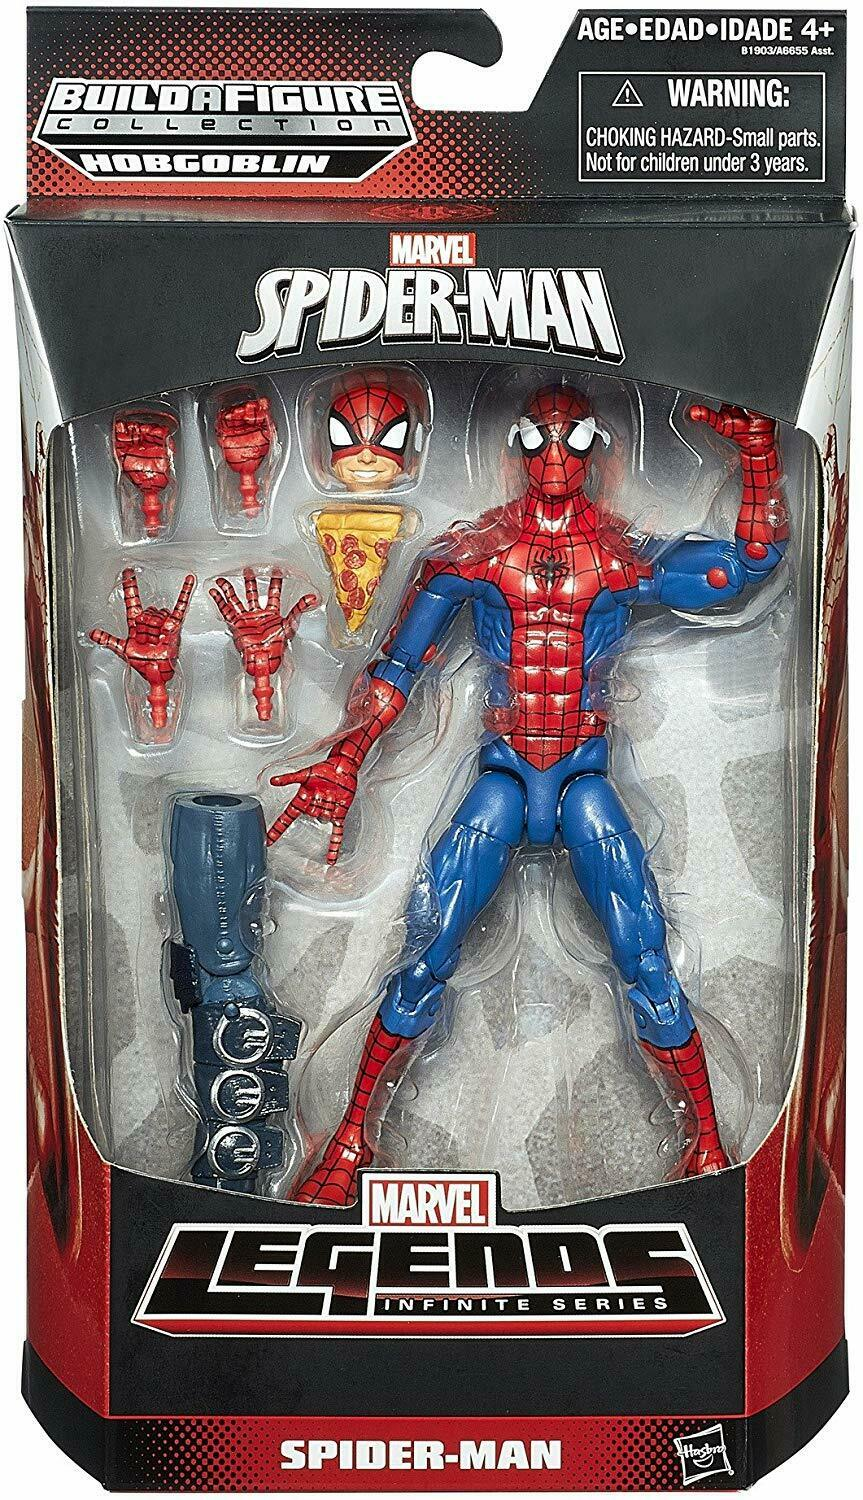 2015 Marvel Legends Infinite Series SPIDER-MAN PIZZA HOBGOBLIN Series Sealed NEW